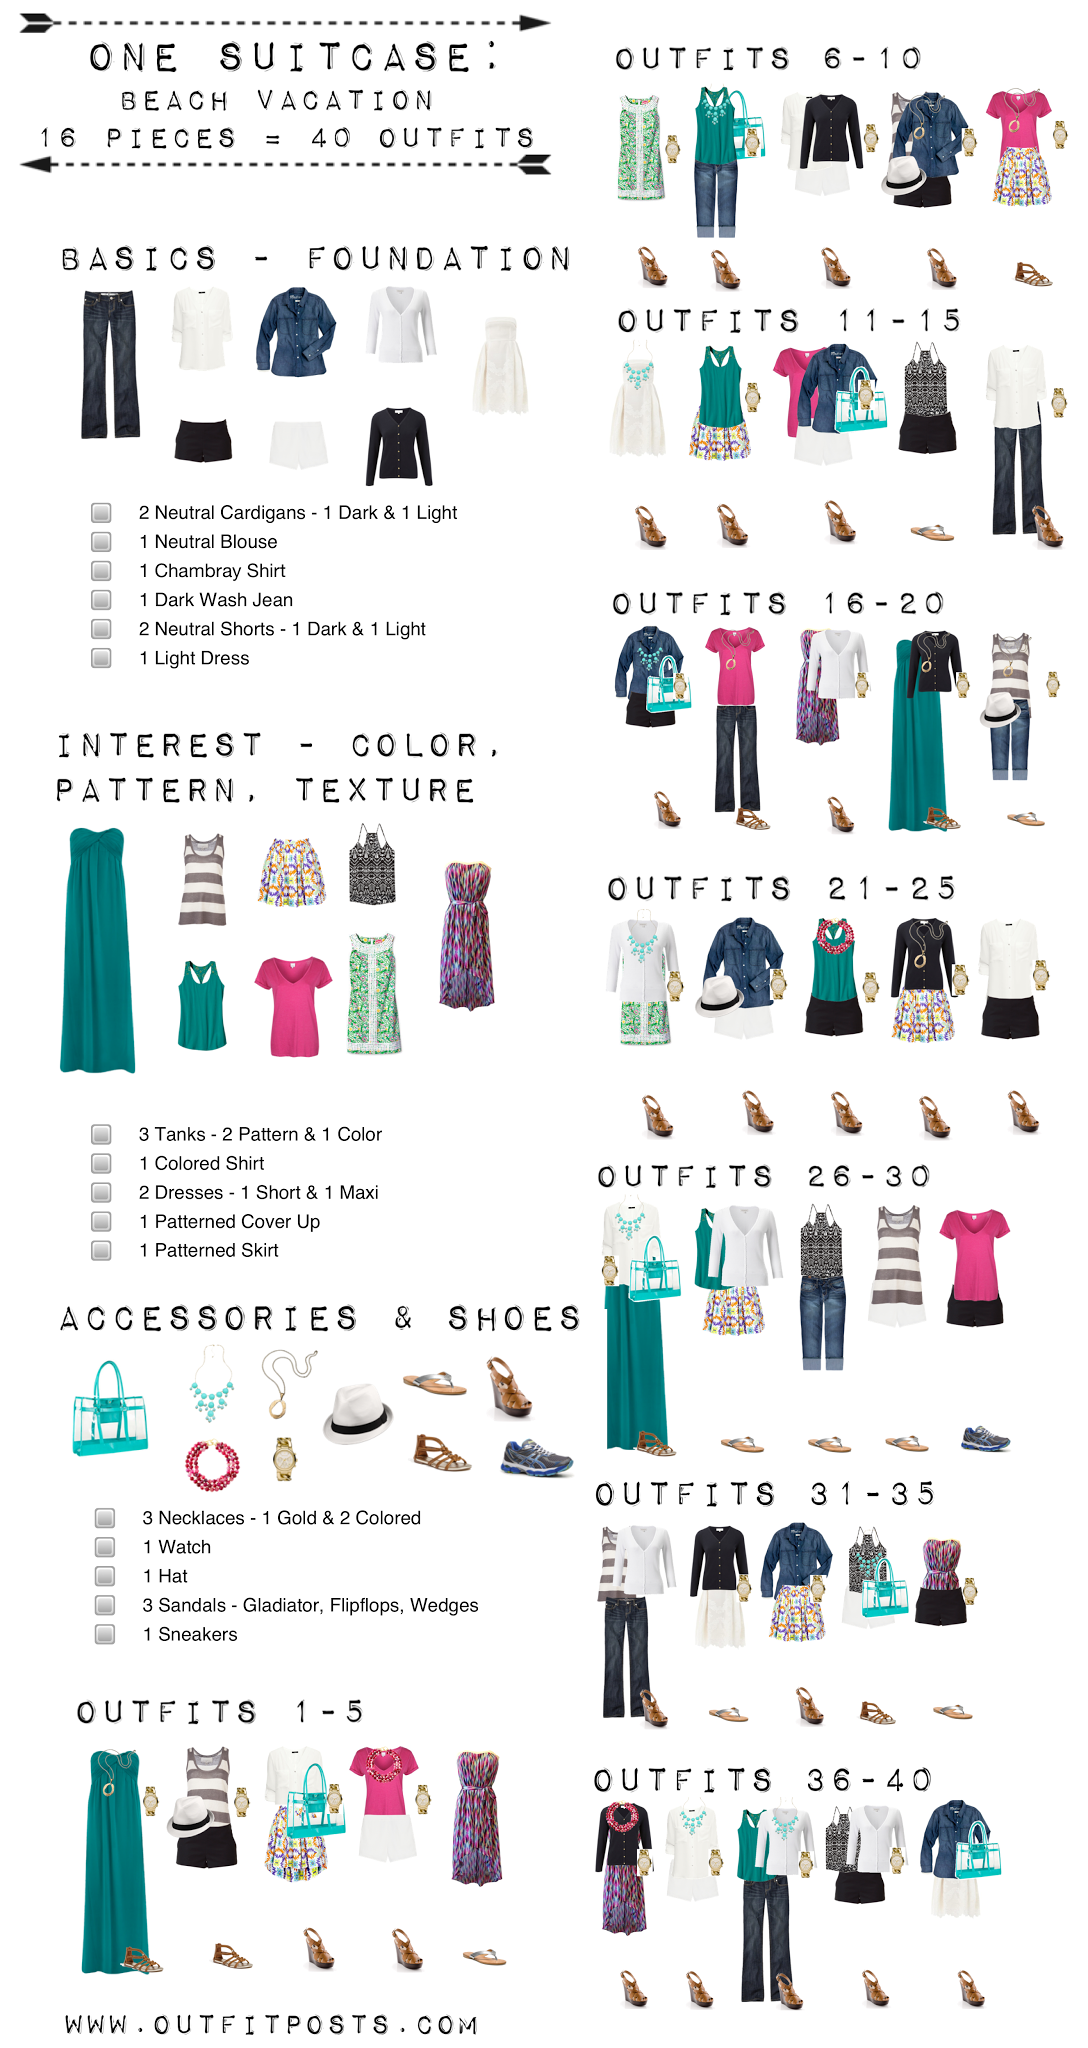 Outfit Posts: one suitcase: beach vacation capsule wardrobe #beachvacationclothes